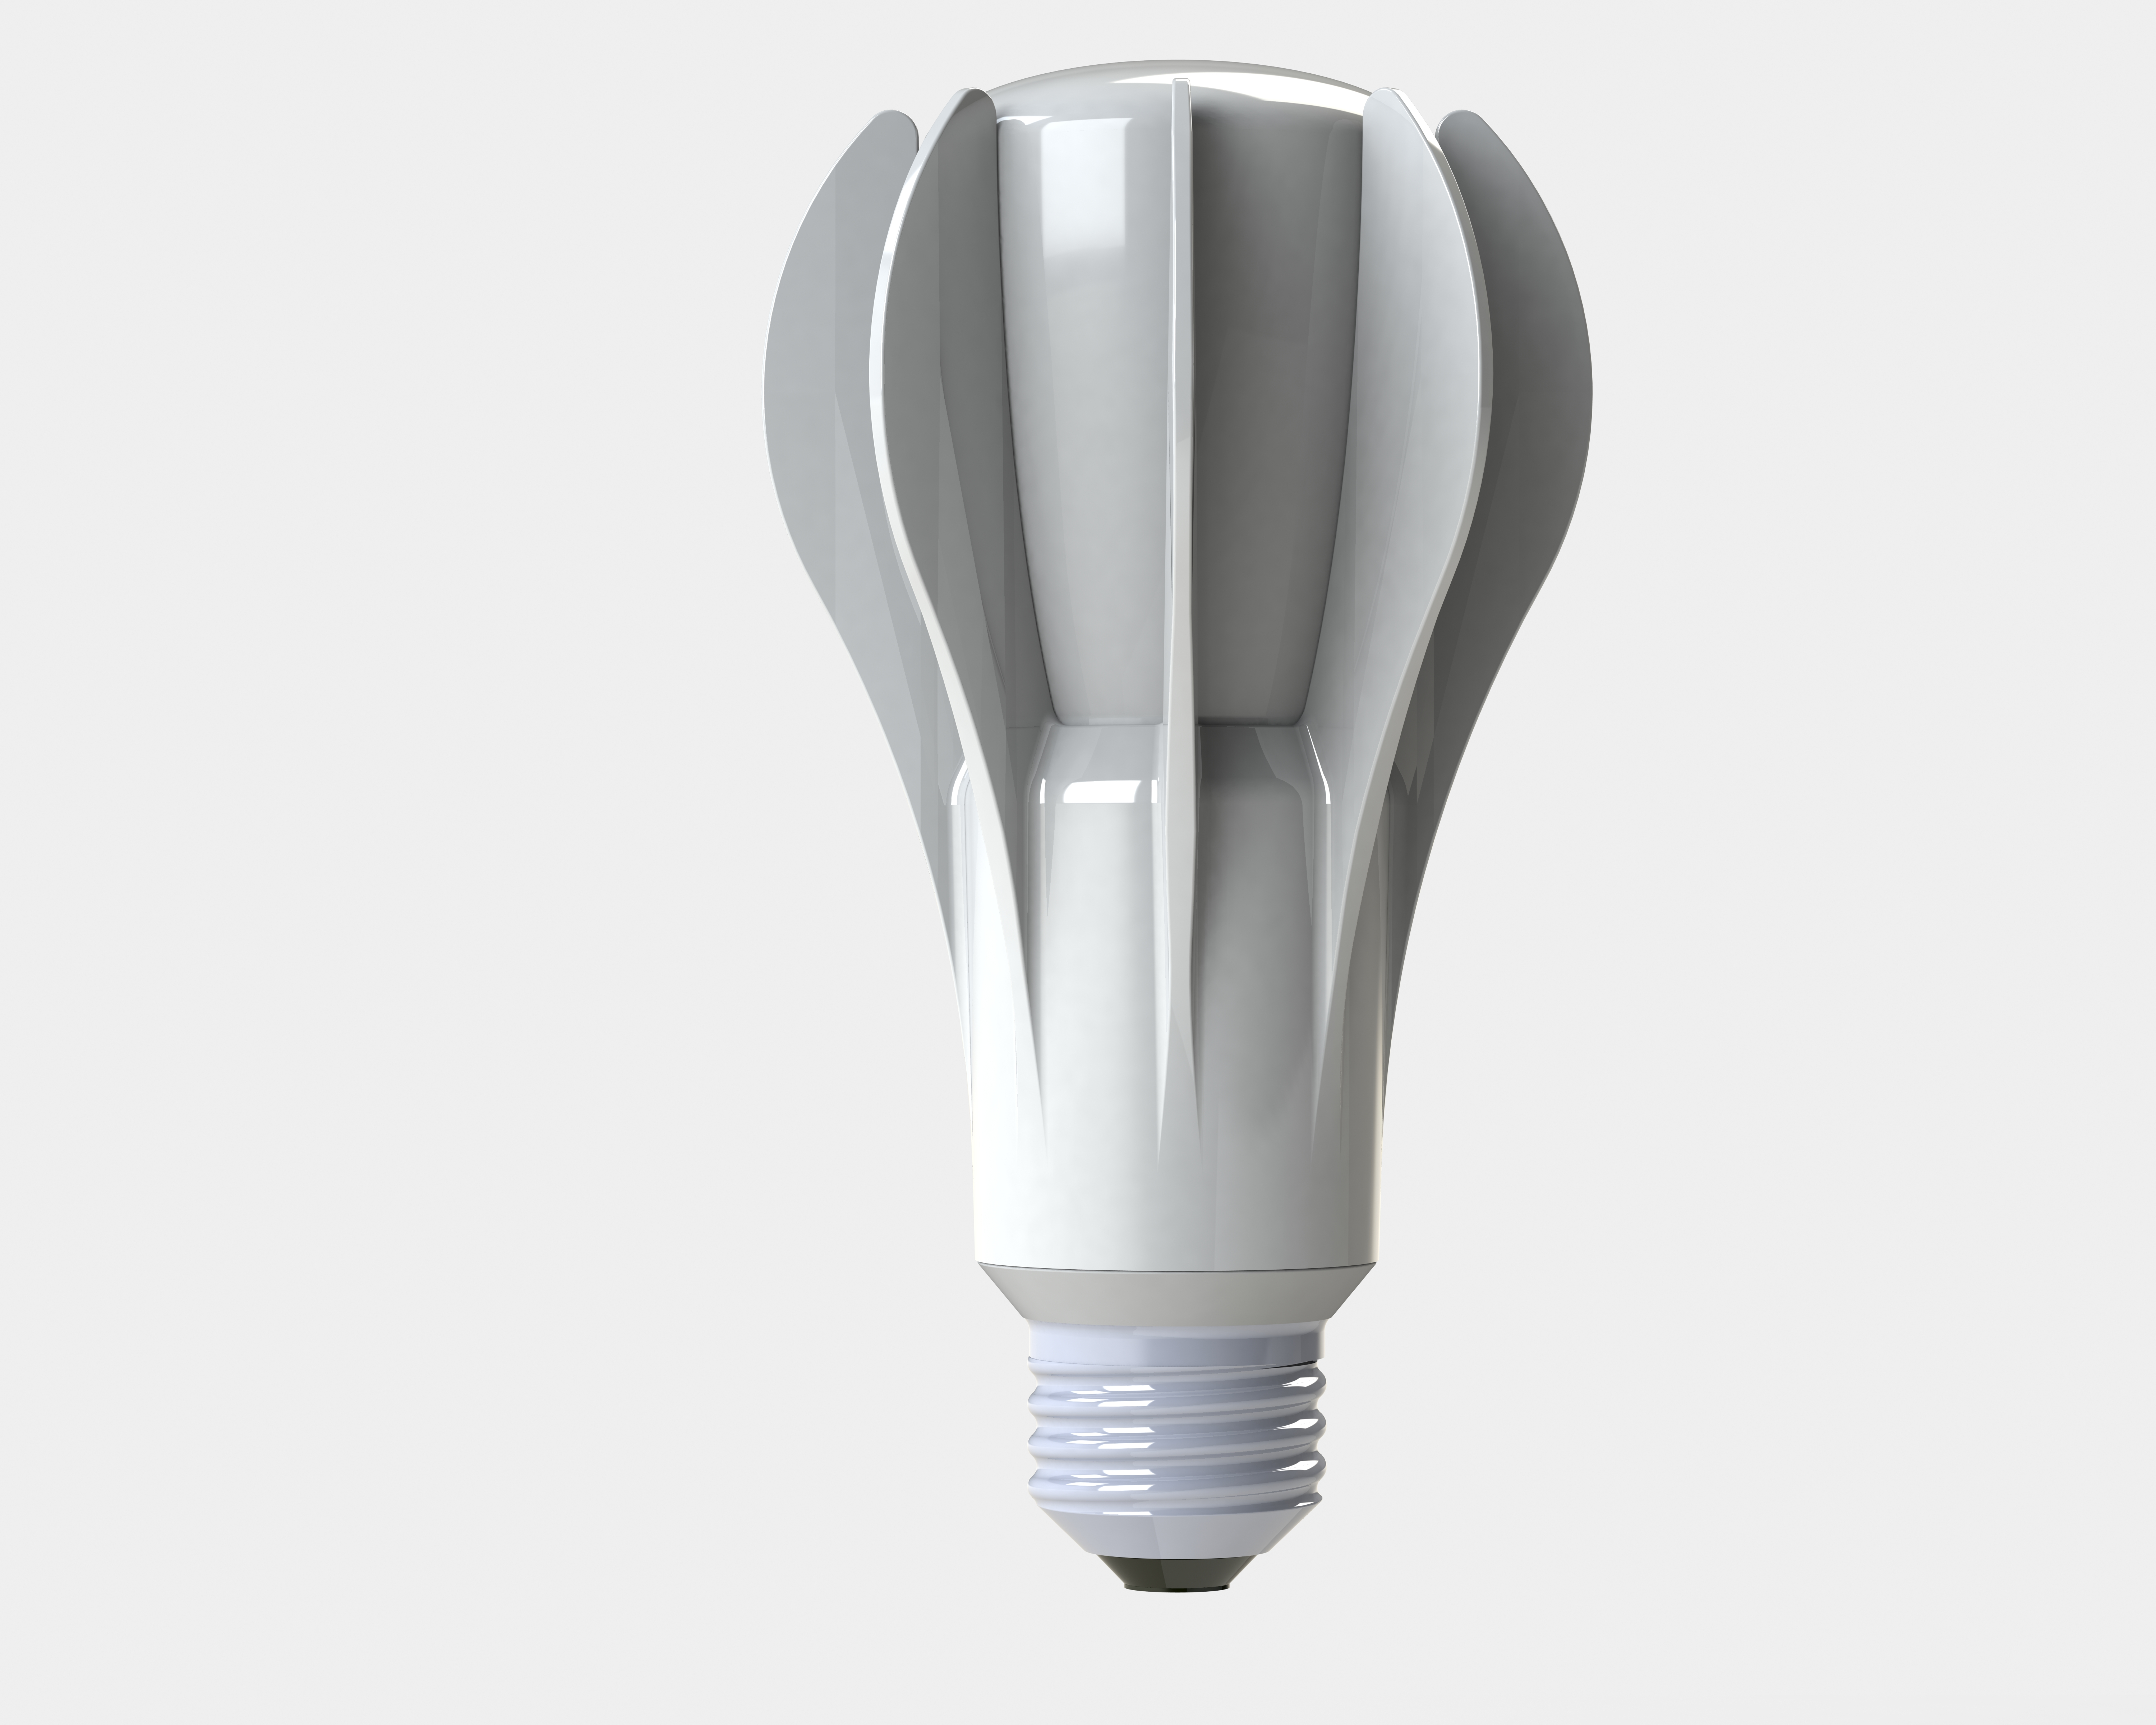 ge led bulb the first energy star qualified to achieve. Black Bedroom Furniture Sets. Home Design Ideas